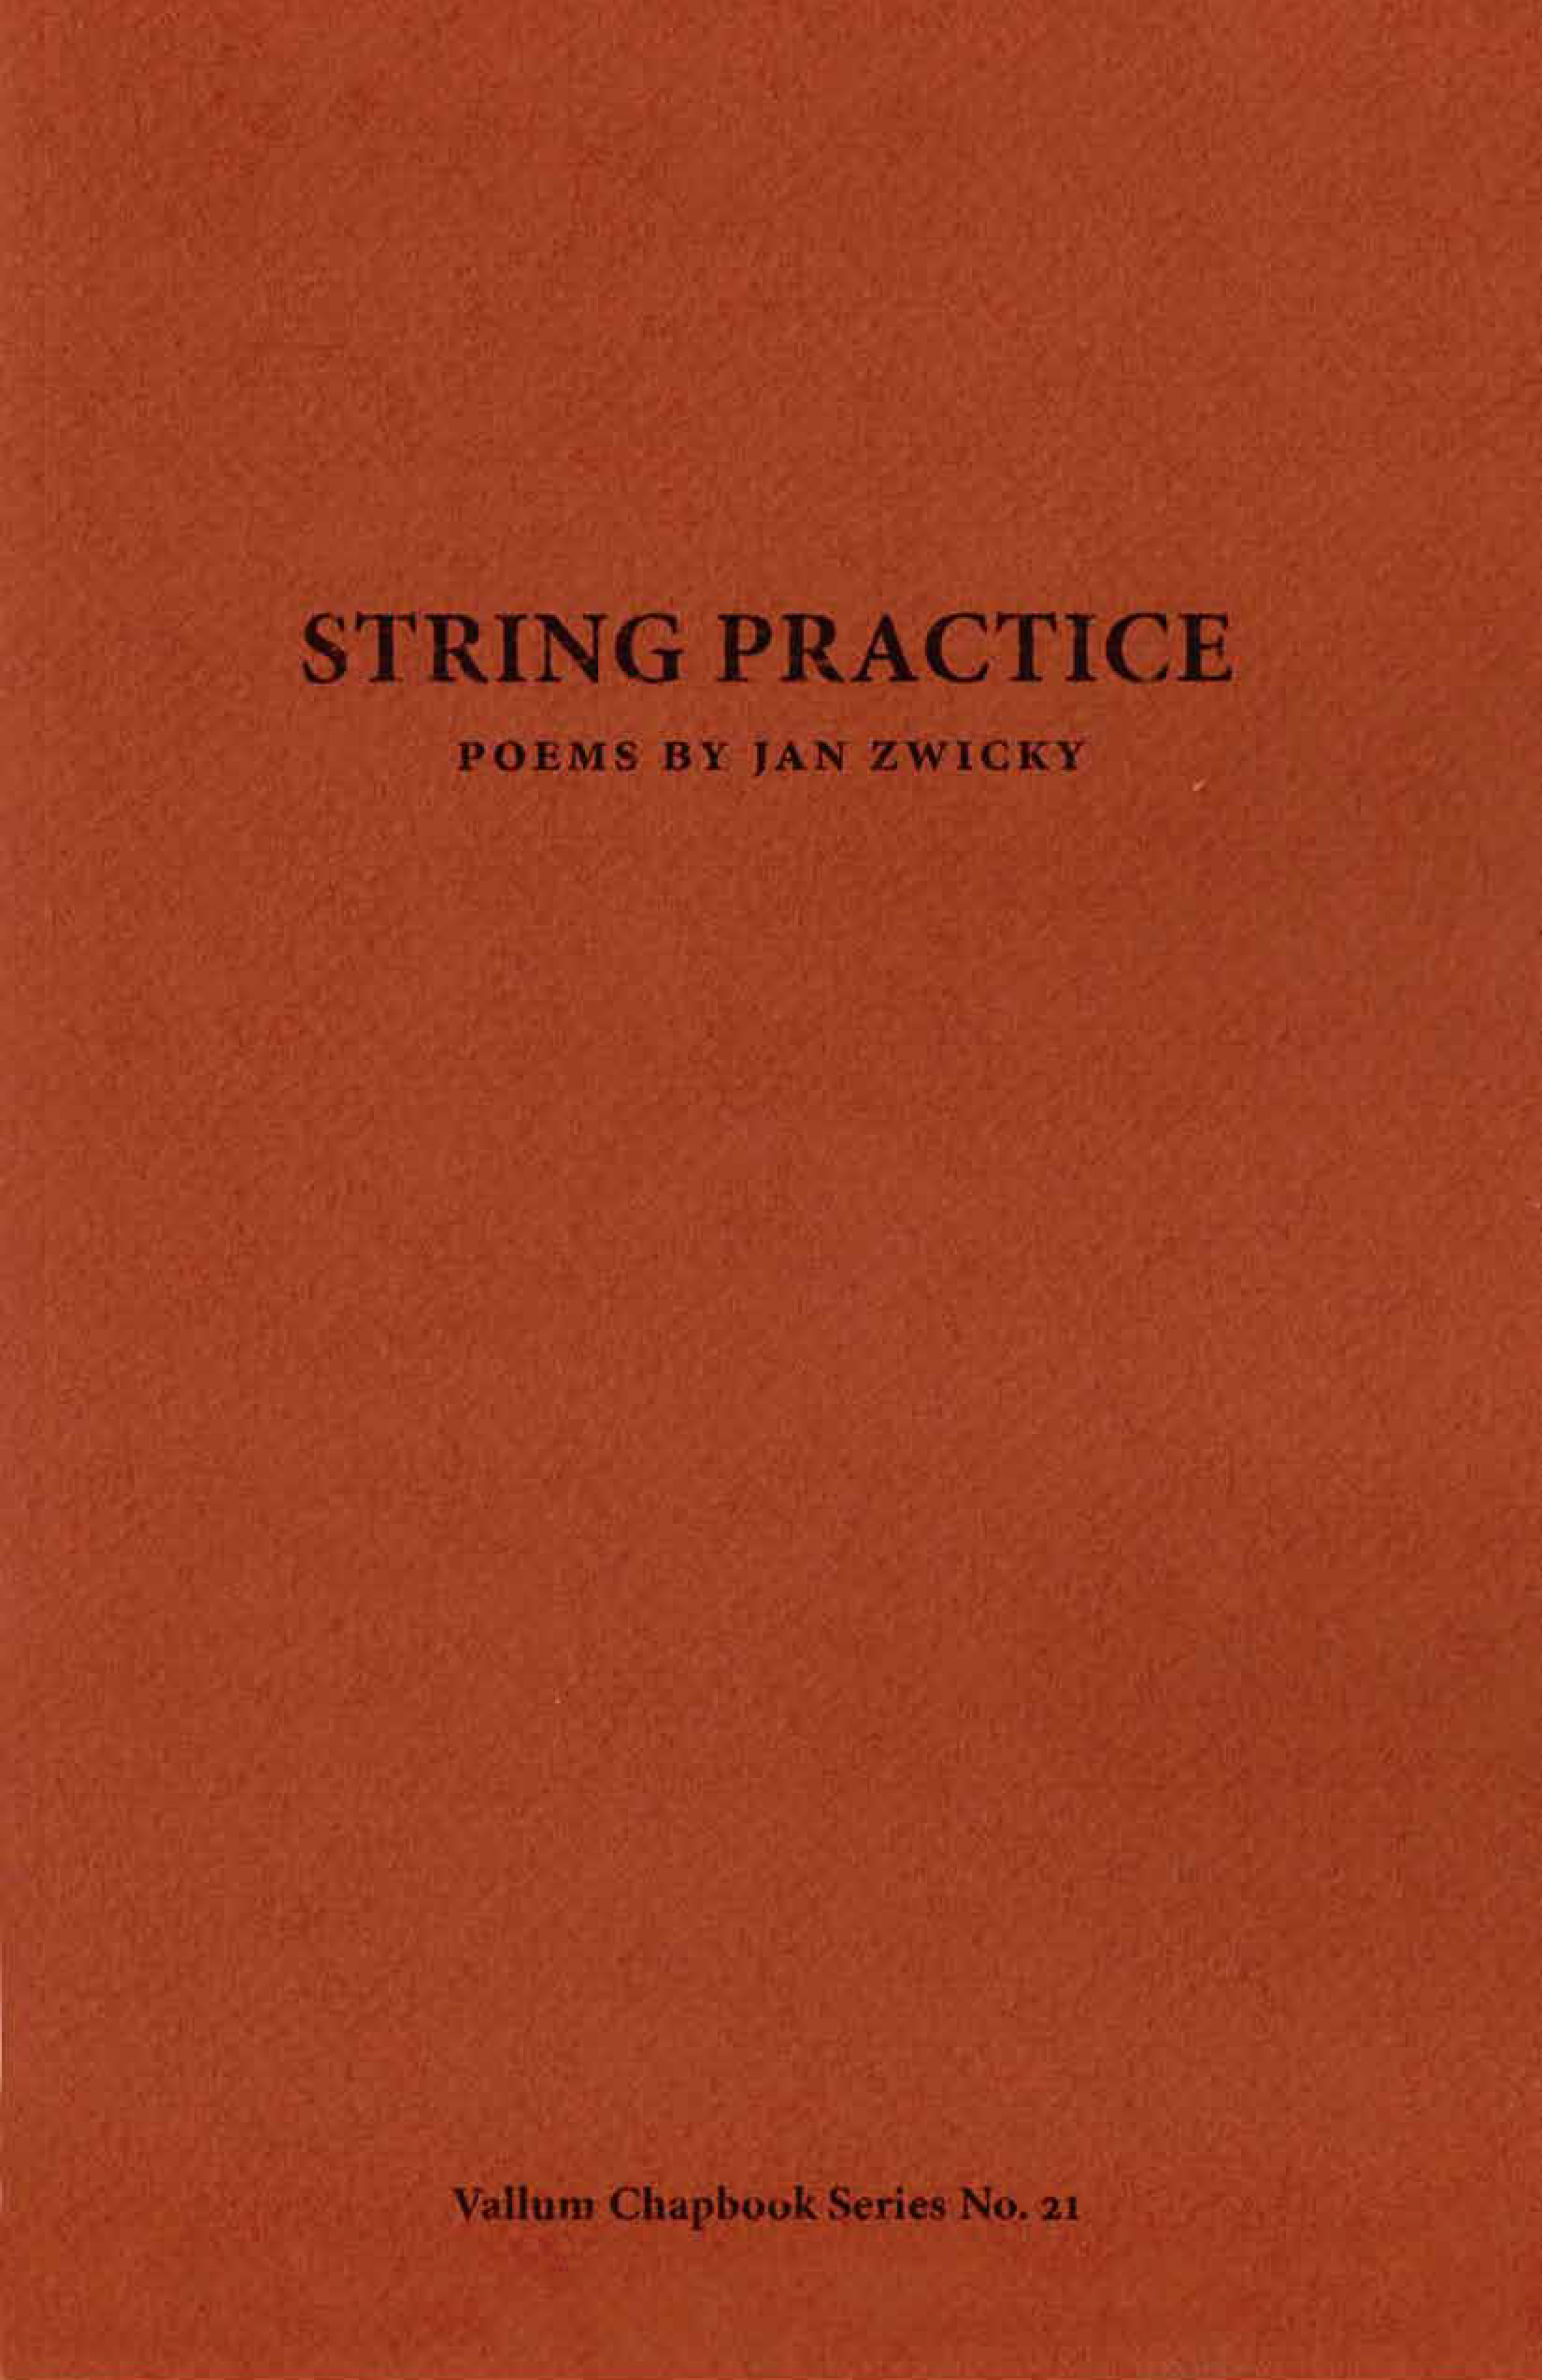 String Practice by Jan Zwicky.jpg